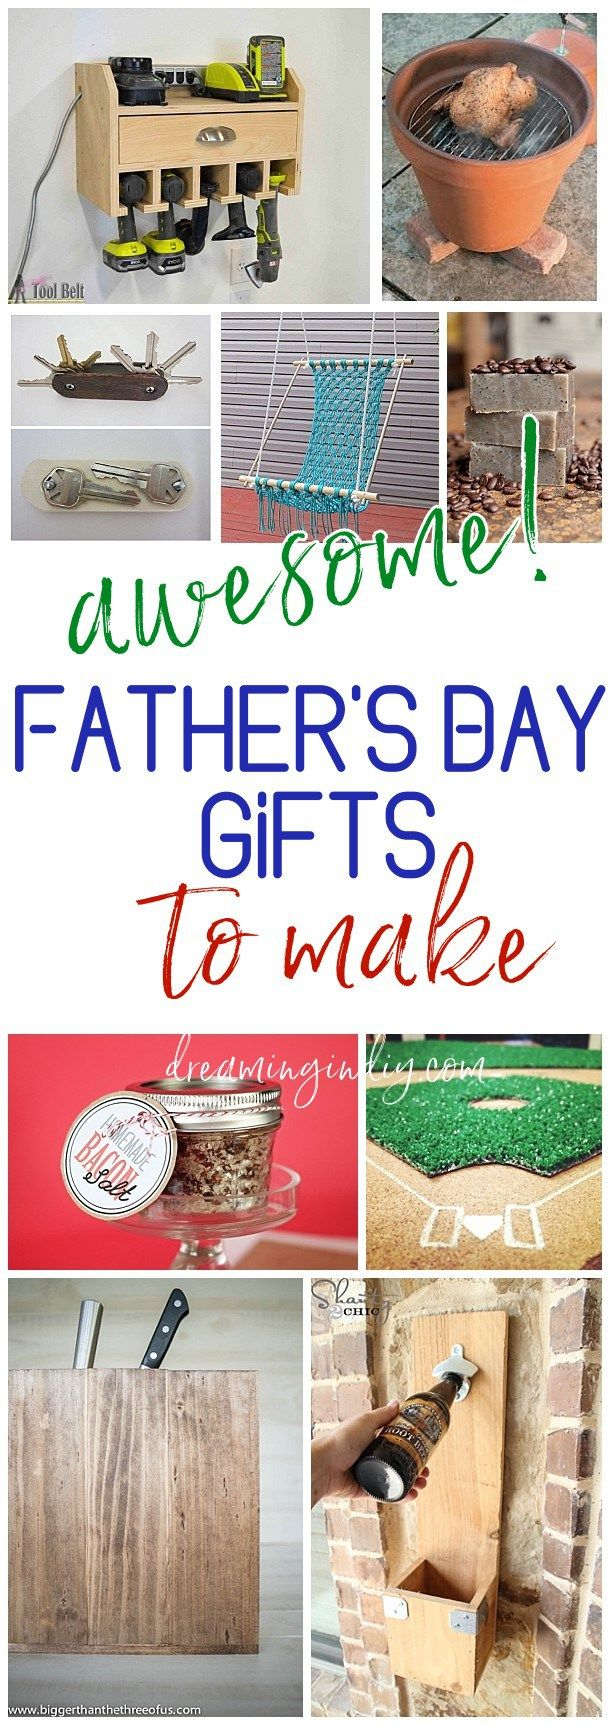 A Do It Yourself Fathers Day Presents For DadsBirthday